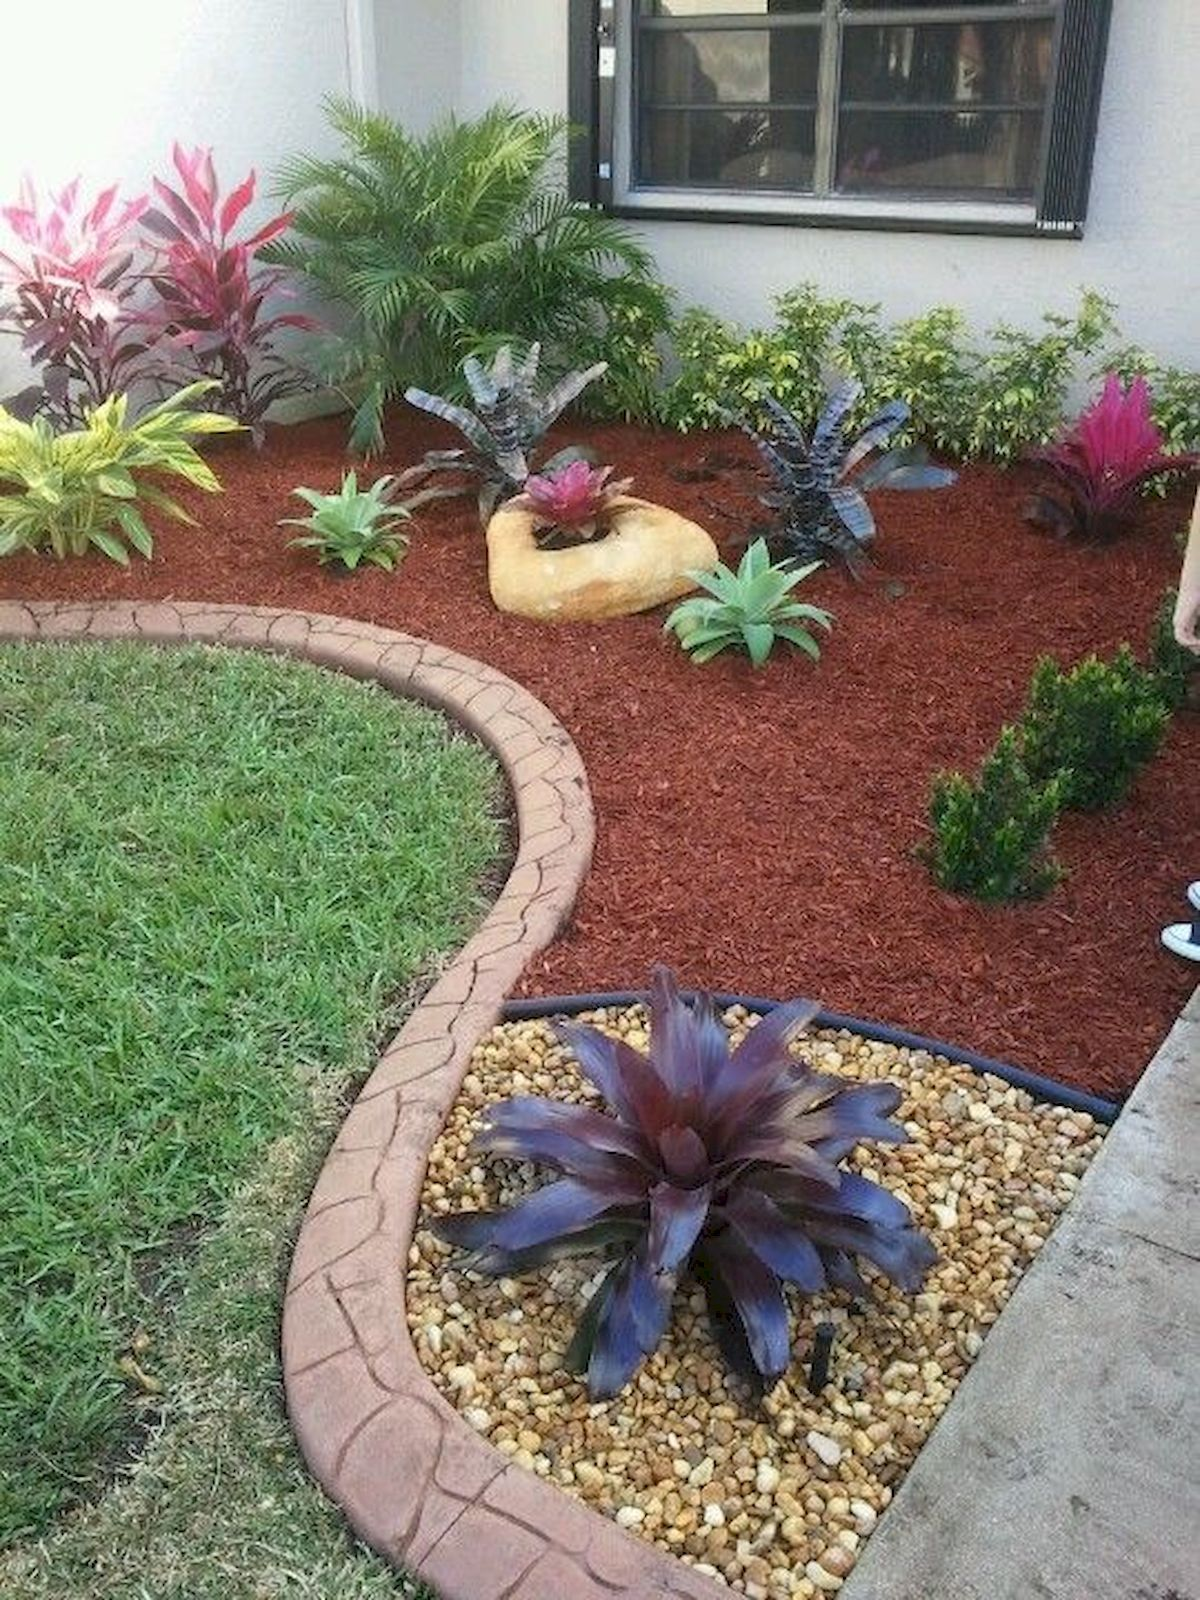 90 Simple And Beautiful Front Yard Landscaping Ideas On A Budget 6 Small Front Yard Landscaping Front Yard Landscaping Design Front Garden Landscape